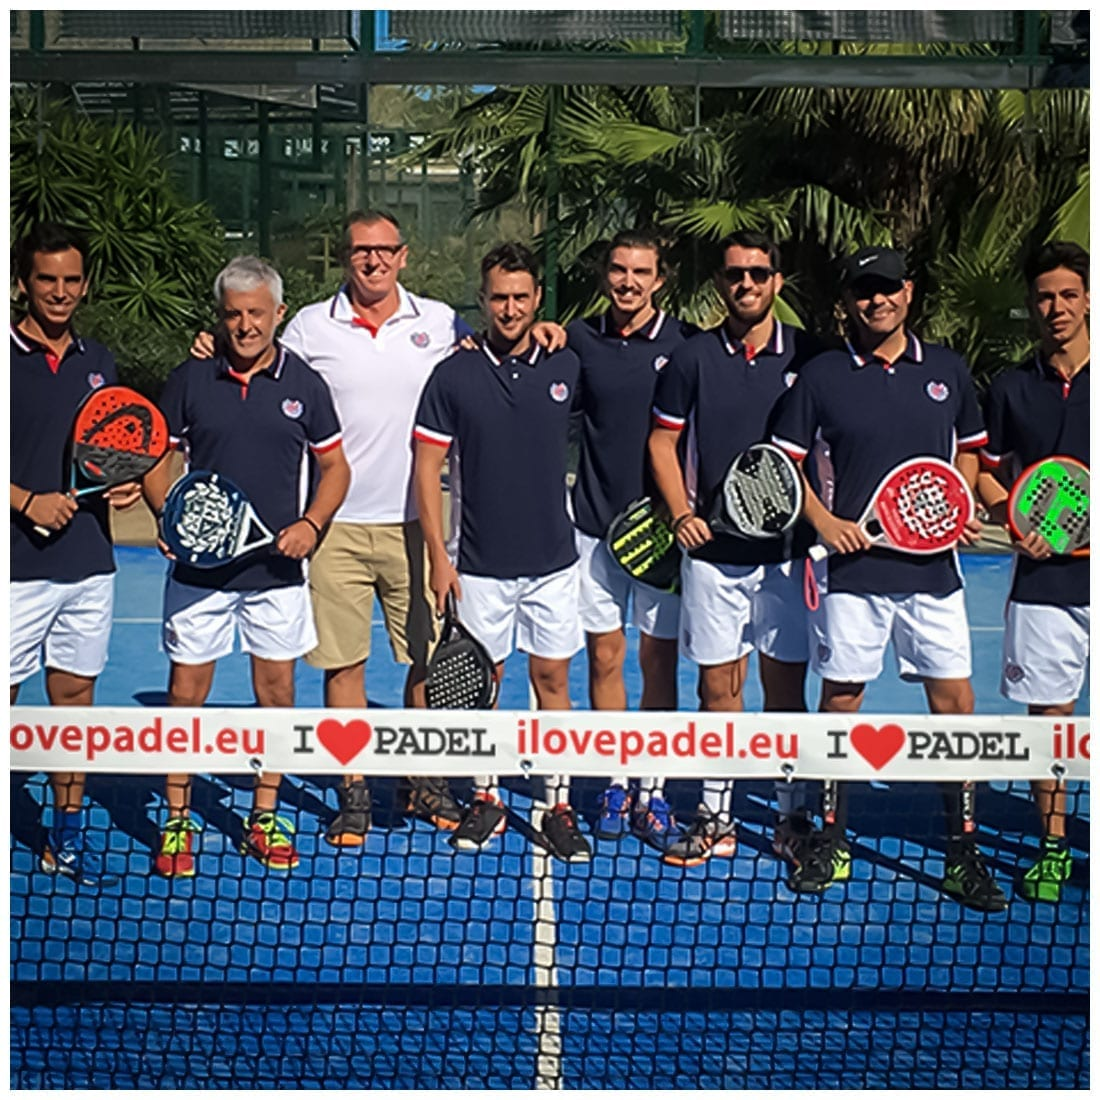 Best padel team 2019 and 2020 Fibra Sport, Maresme. Interclub Padel Competition the ins, and outs explained.